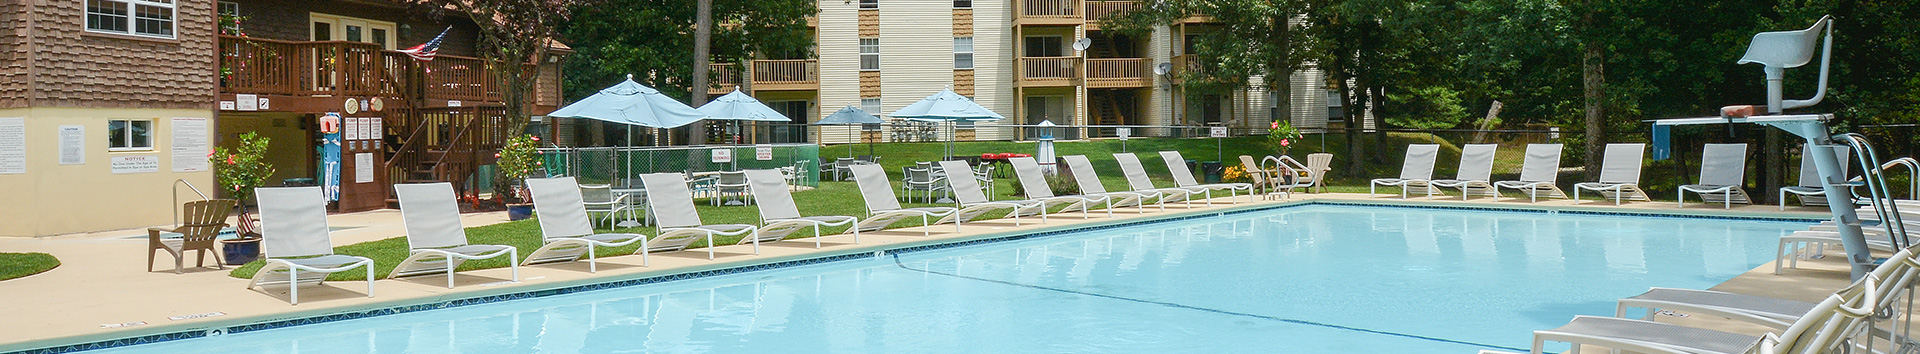 Swimming Pool of California Apartments at Manor Communities, Absecon/New Jersey